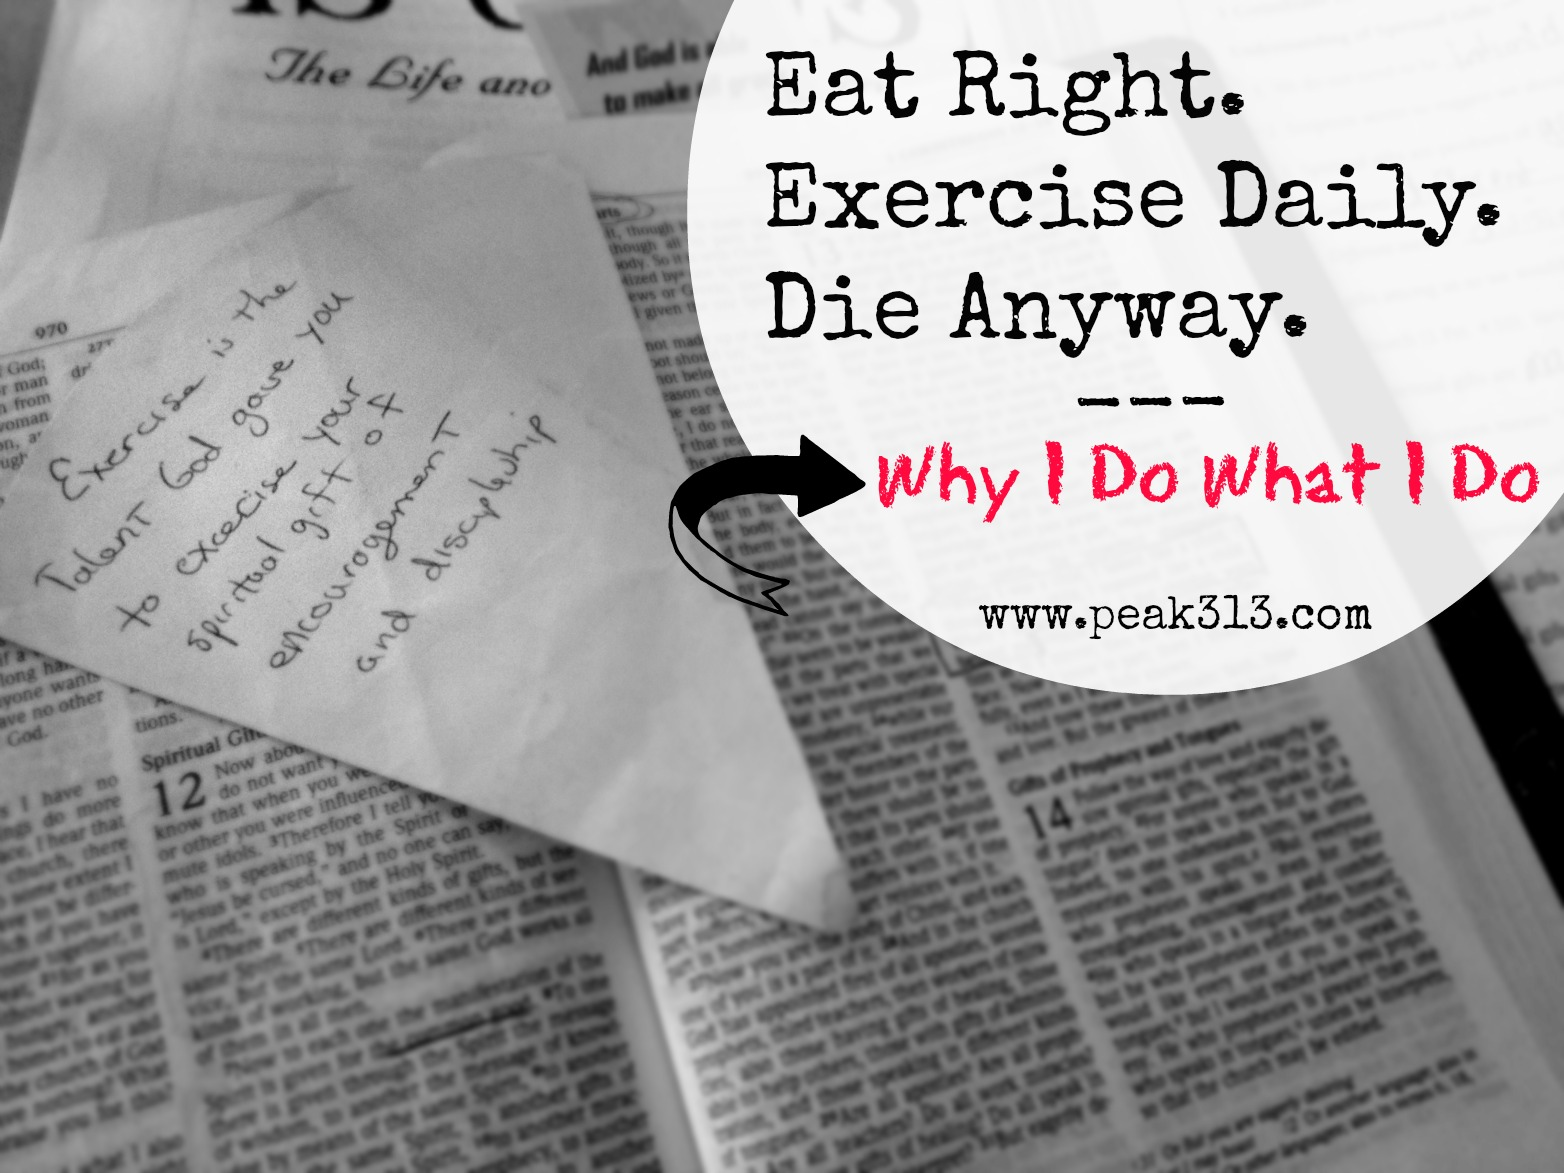 Eat Right. Exercise Daily. Die Anyway. : Why I Do What I Do | peak313.com